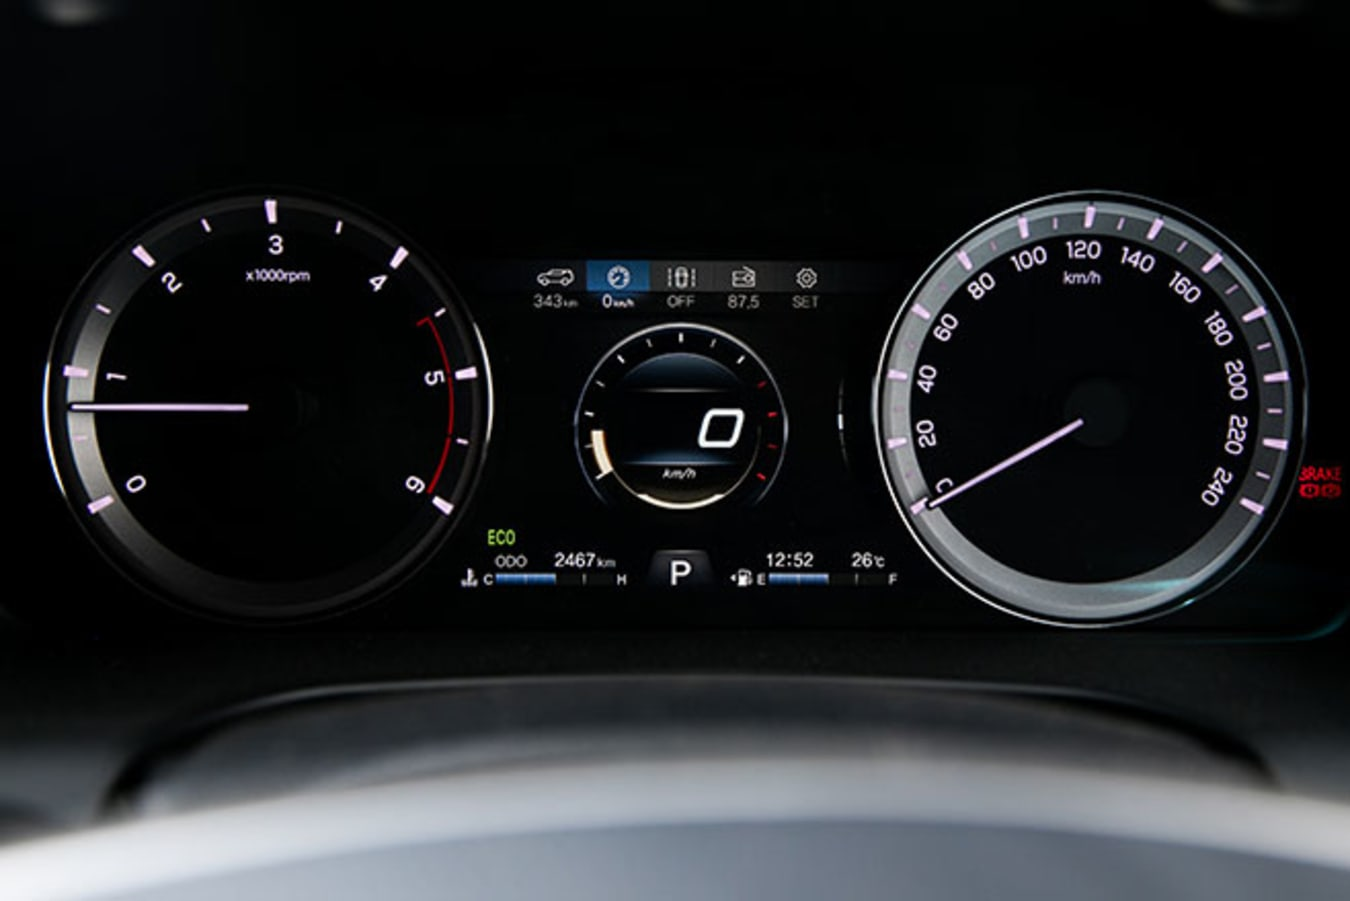 SsangYong Musso XLV Ultimate gauges